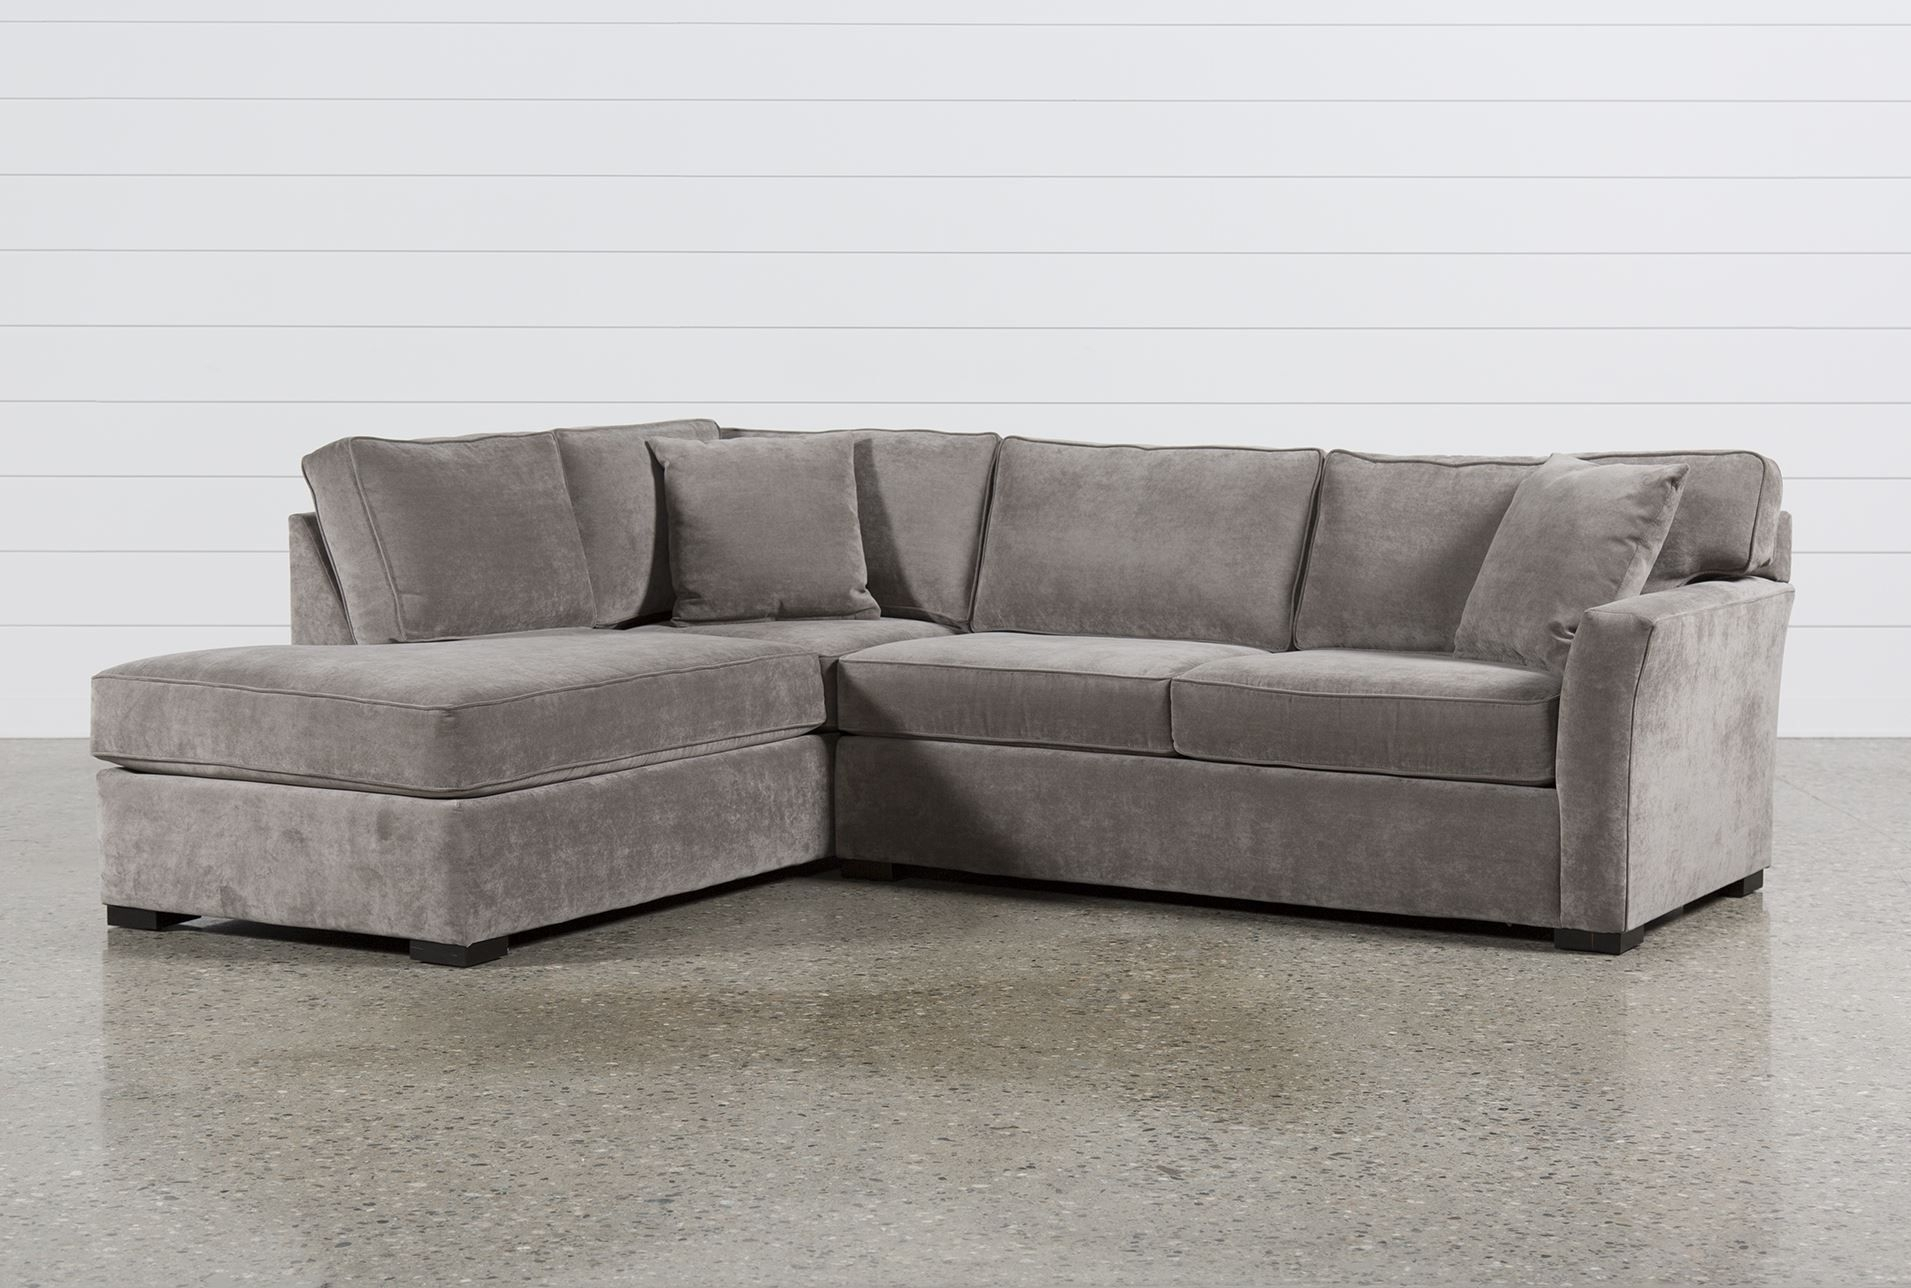 Aspen 2 Piece Sectional W/laf Chaise, Grey, Sofas | Aspen And Apartments pertaining to Avery 2 Piece Sectionals With Raf Armless Chaise (Image 3 of 30)